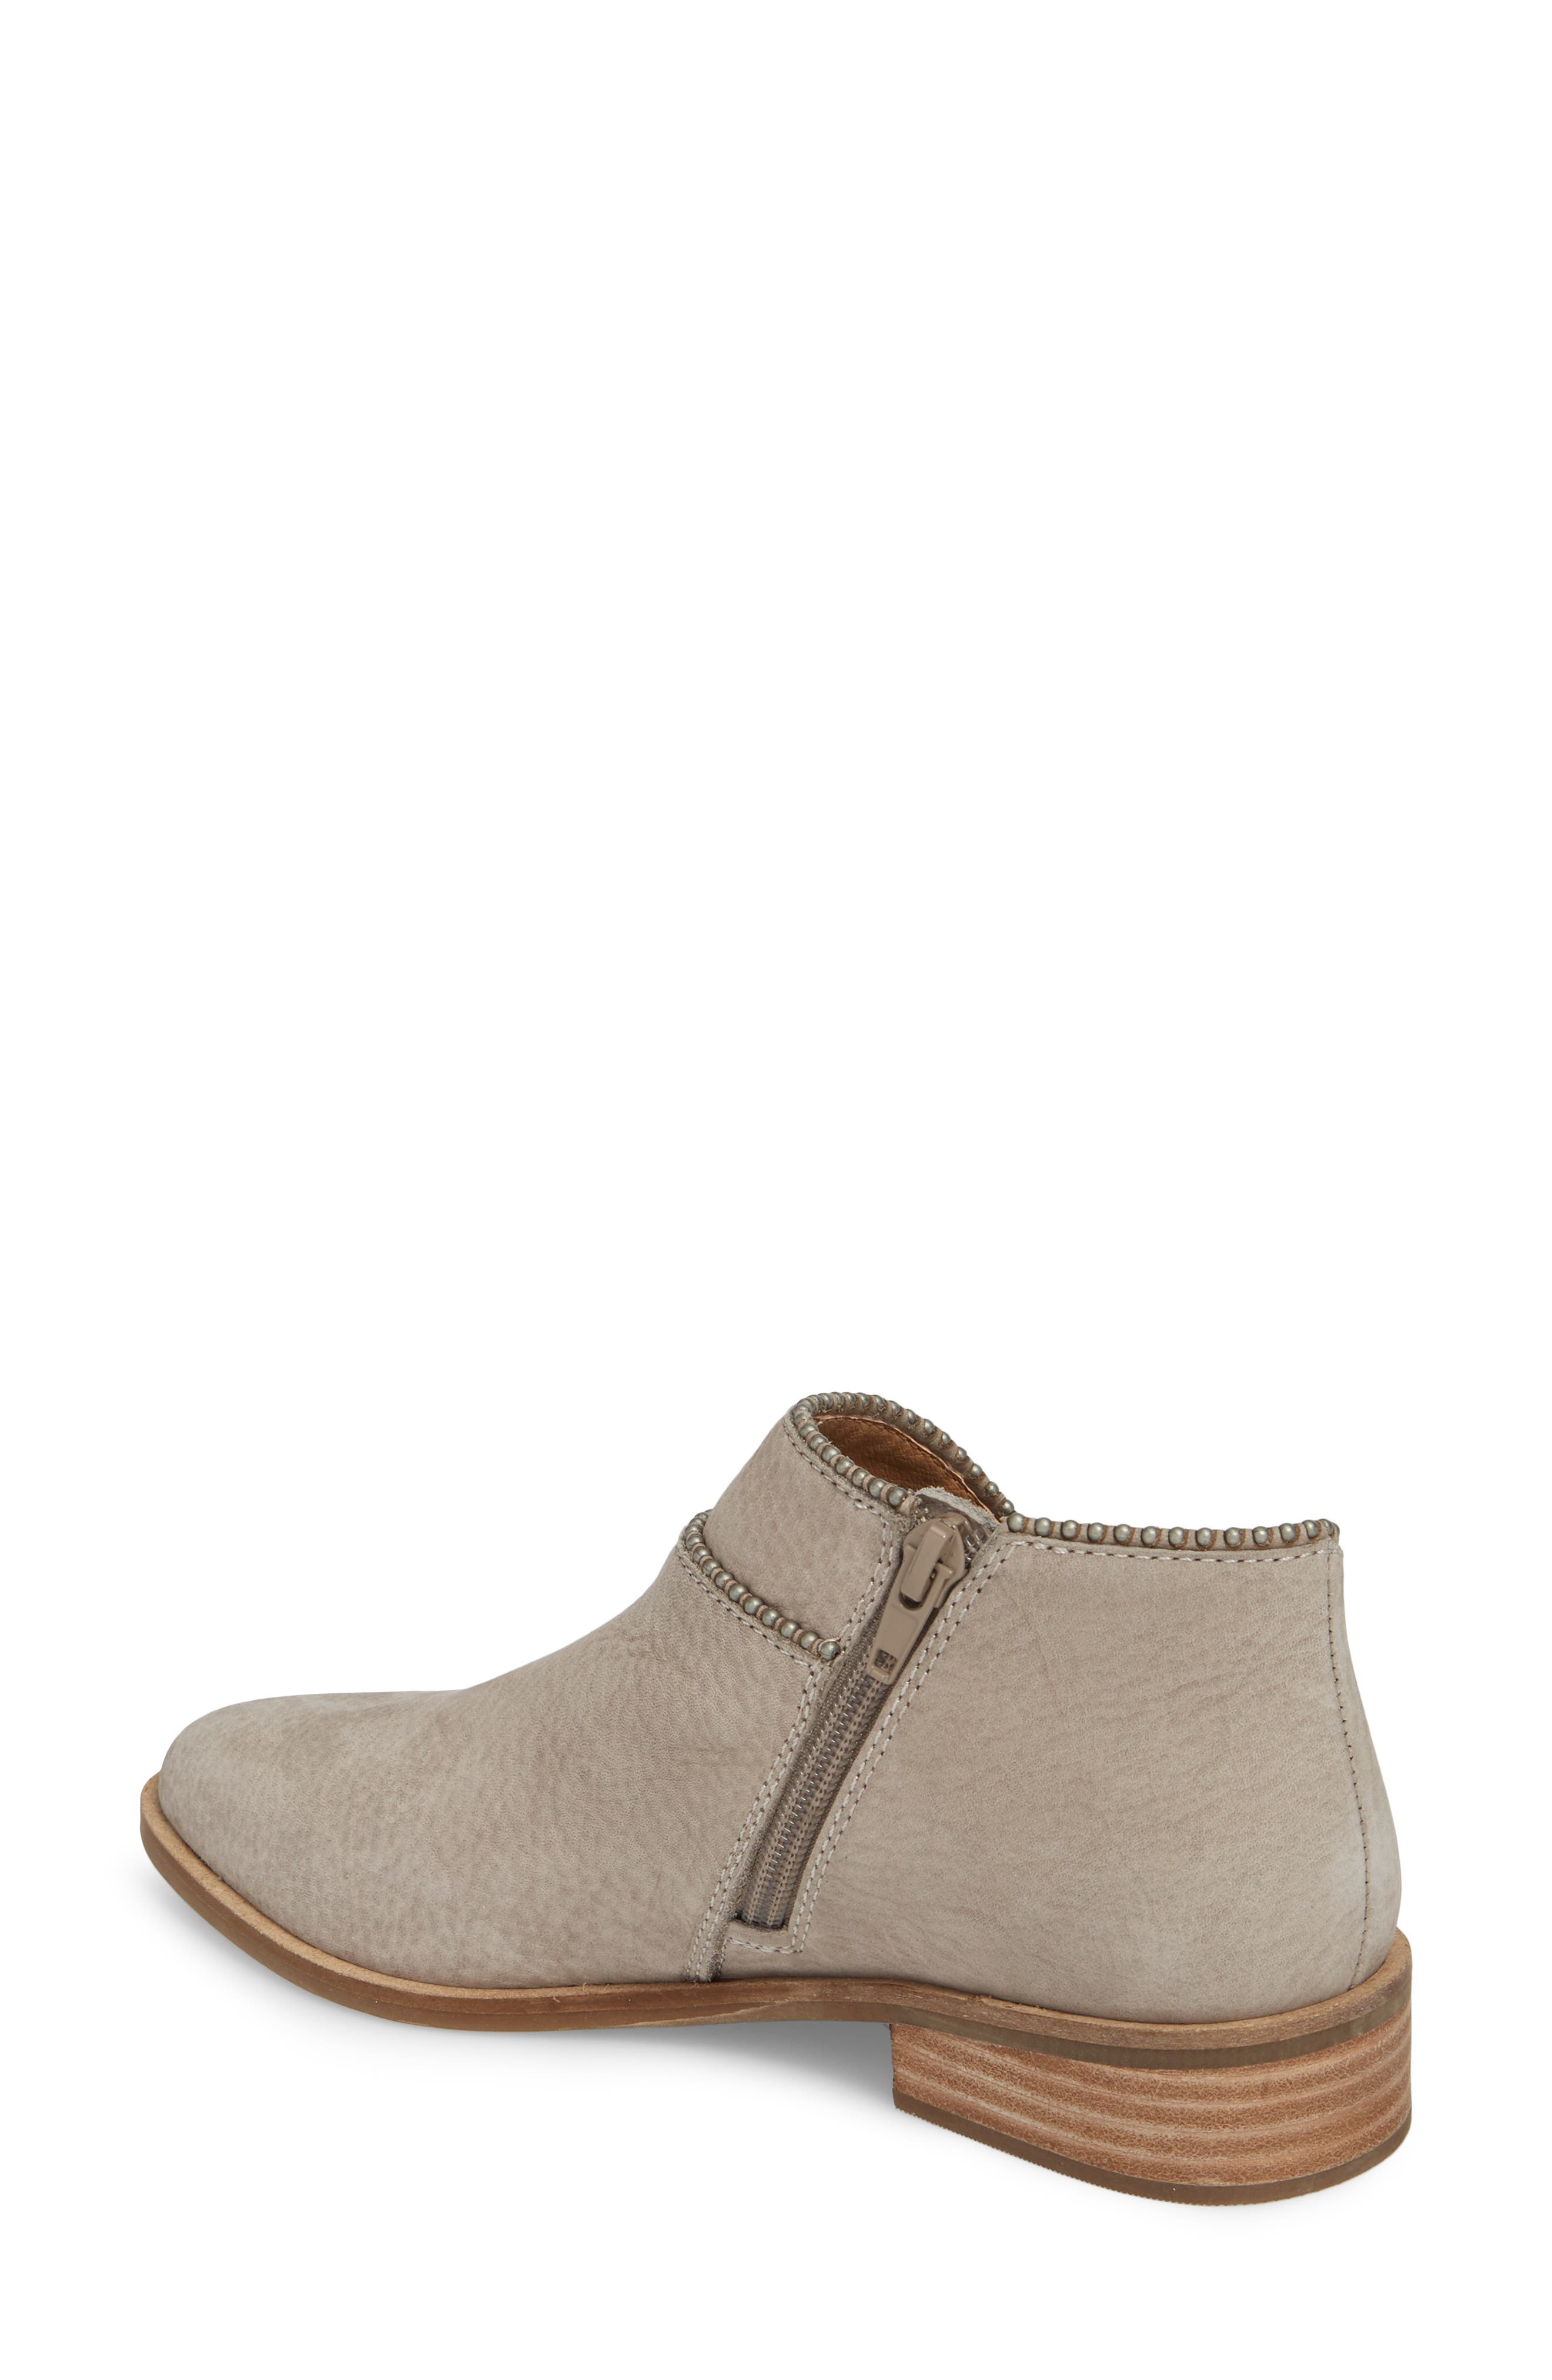 LUCKY BRAND,                             Perrma Bootie,                             Alternate thumbnail 2, color,                             060